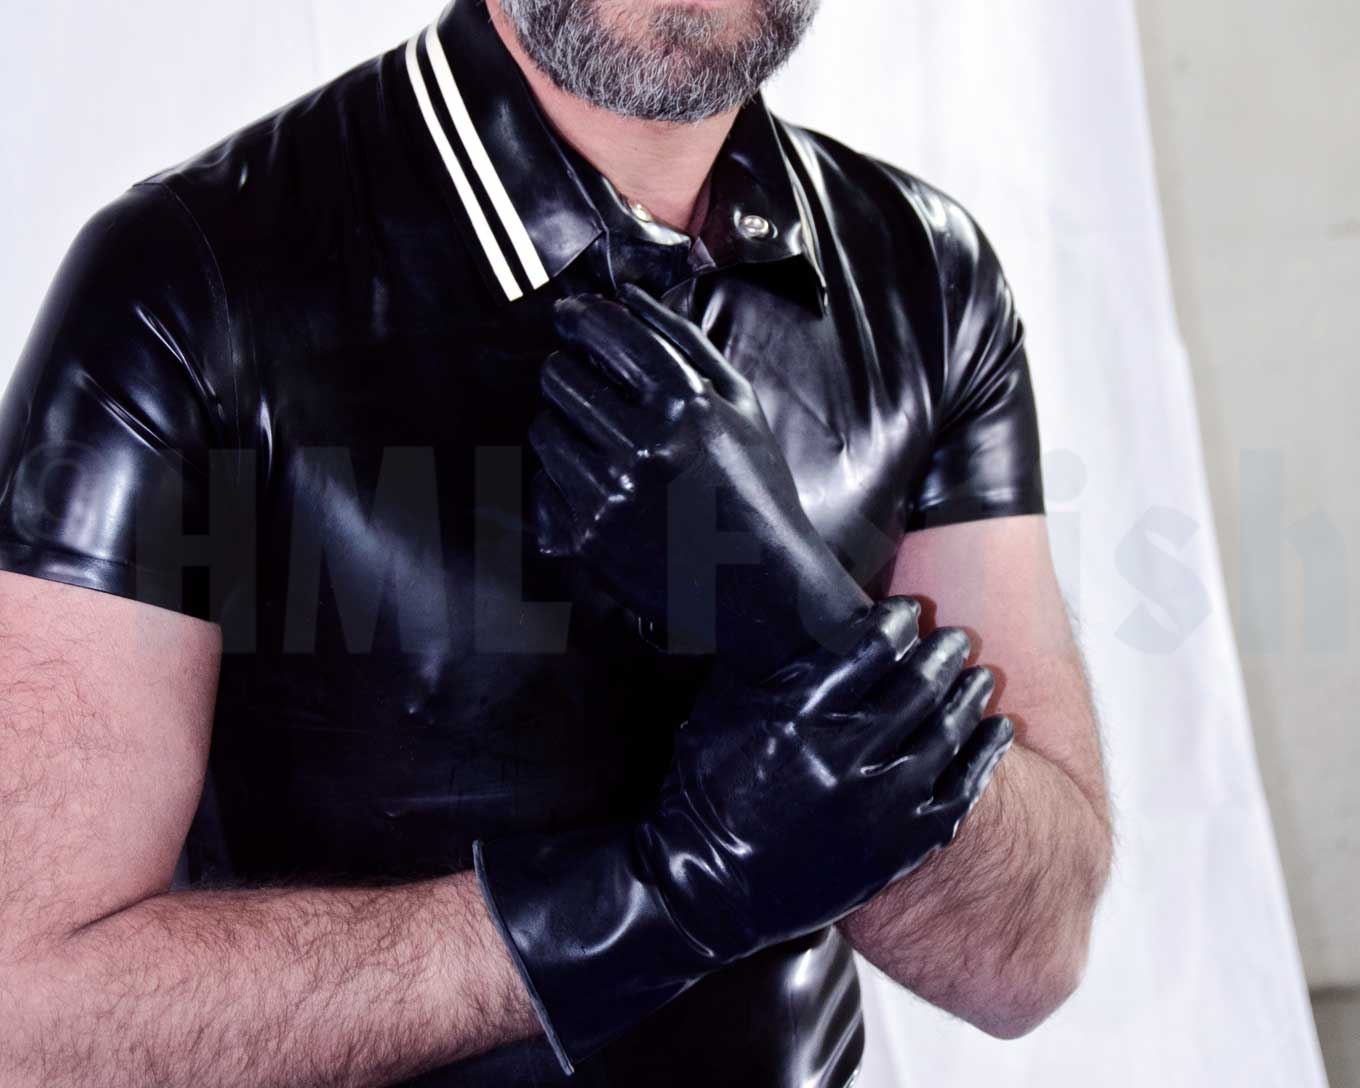 Rubber Gloves 0.3 mm wrist length Black smooth latex gloves. With its 0.35 mm thin rubber material, they keep your hands sensitiveness. These gloves are manifold usable – except with Crisco. Available in the sizes S, M, L and XL. This is the short version, covering your hands and wrists.